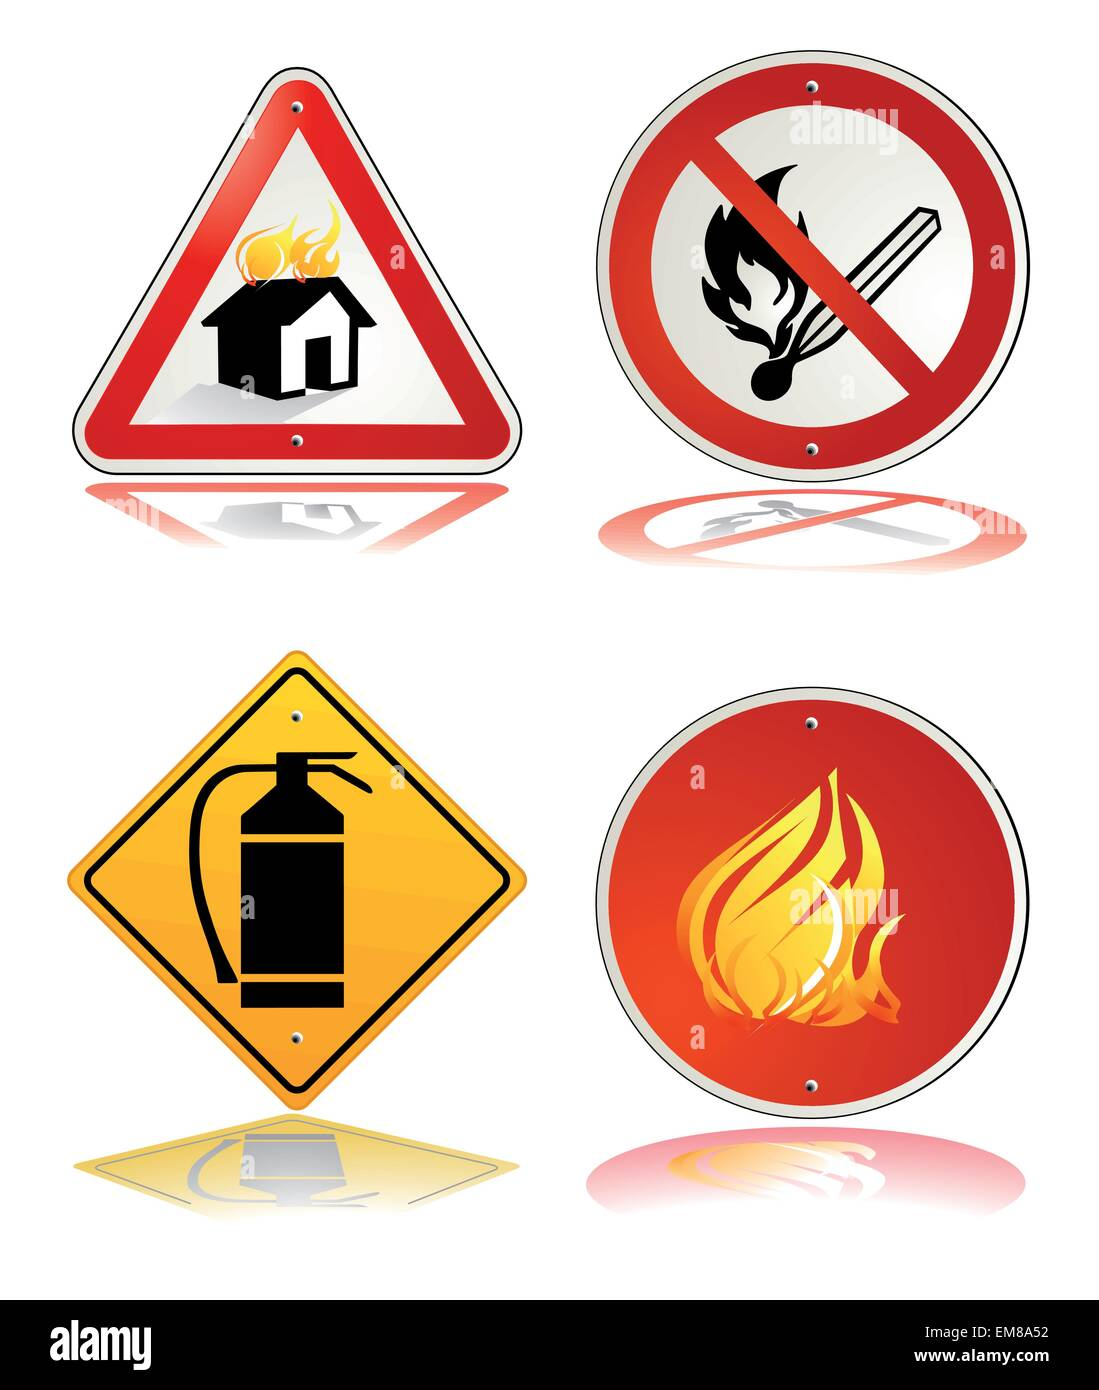 fire safety sign - Stock Image